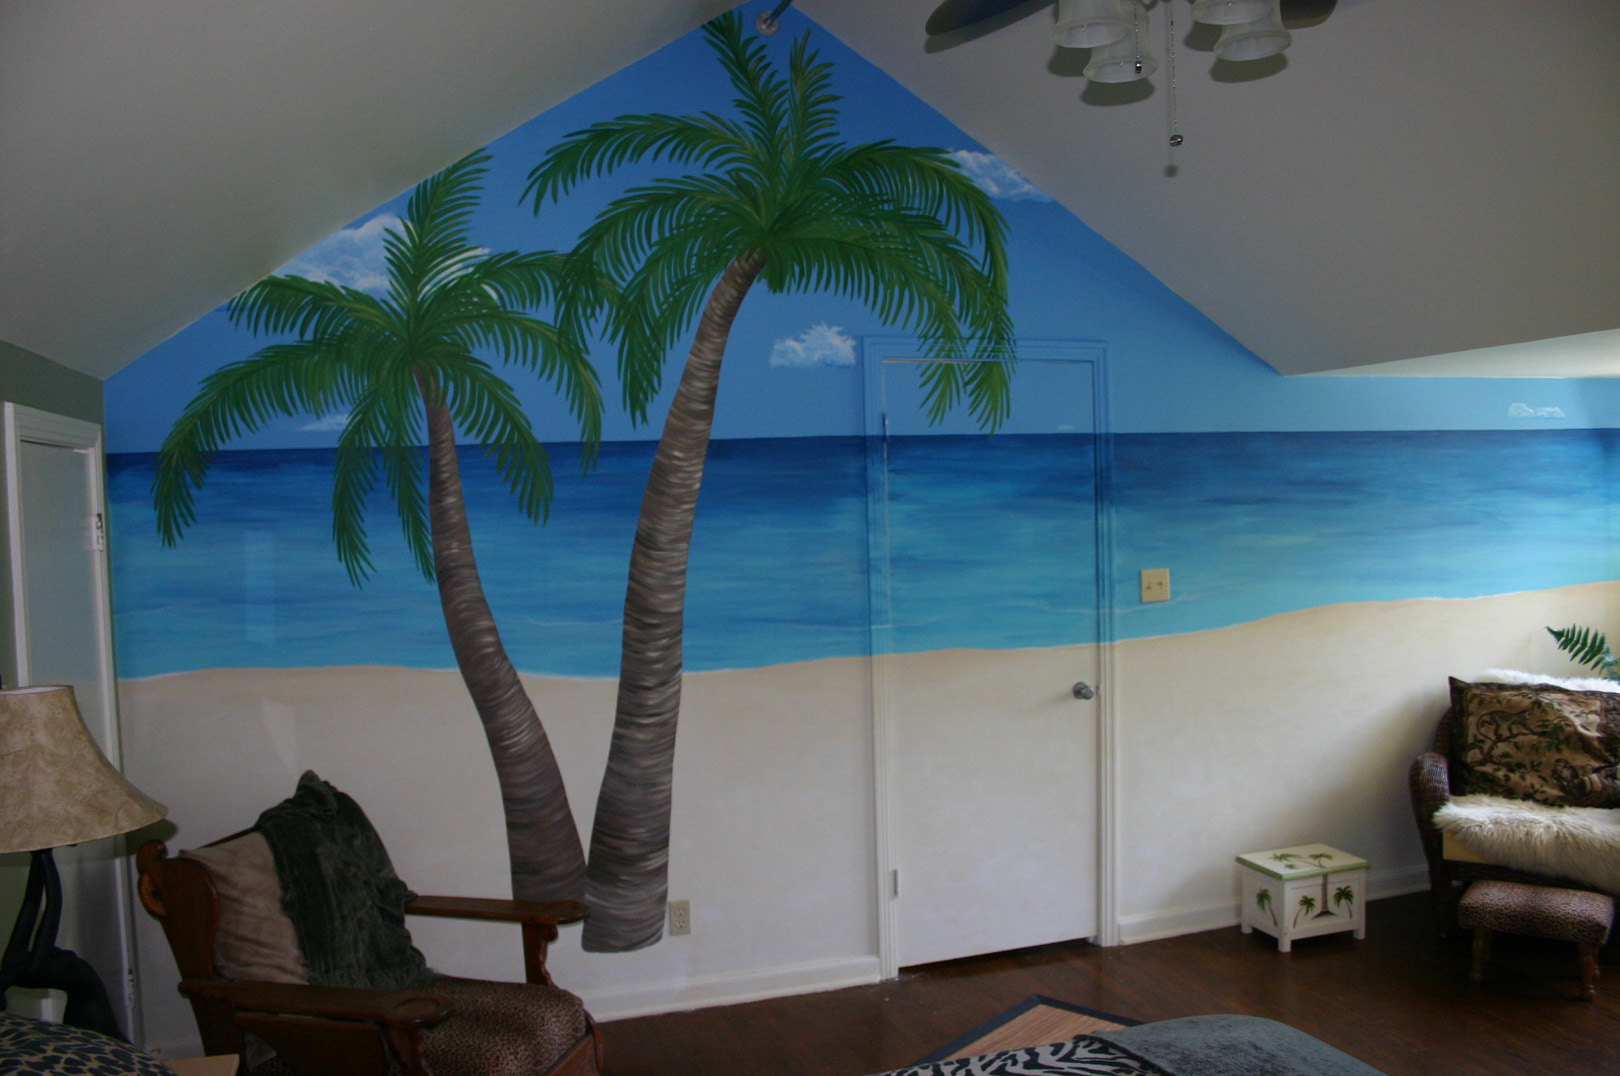 Murals and artwork for Beach mural for wall